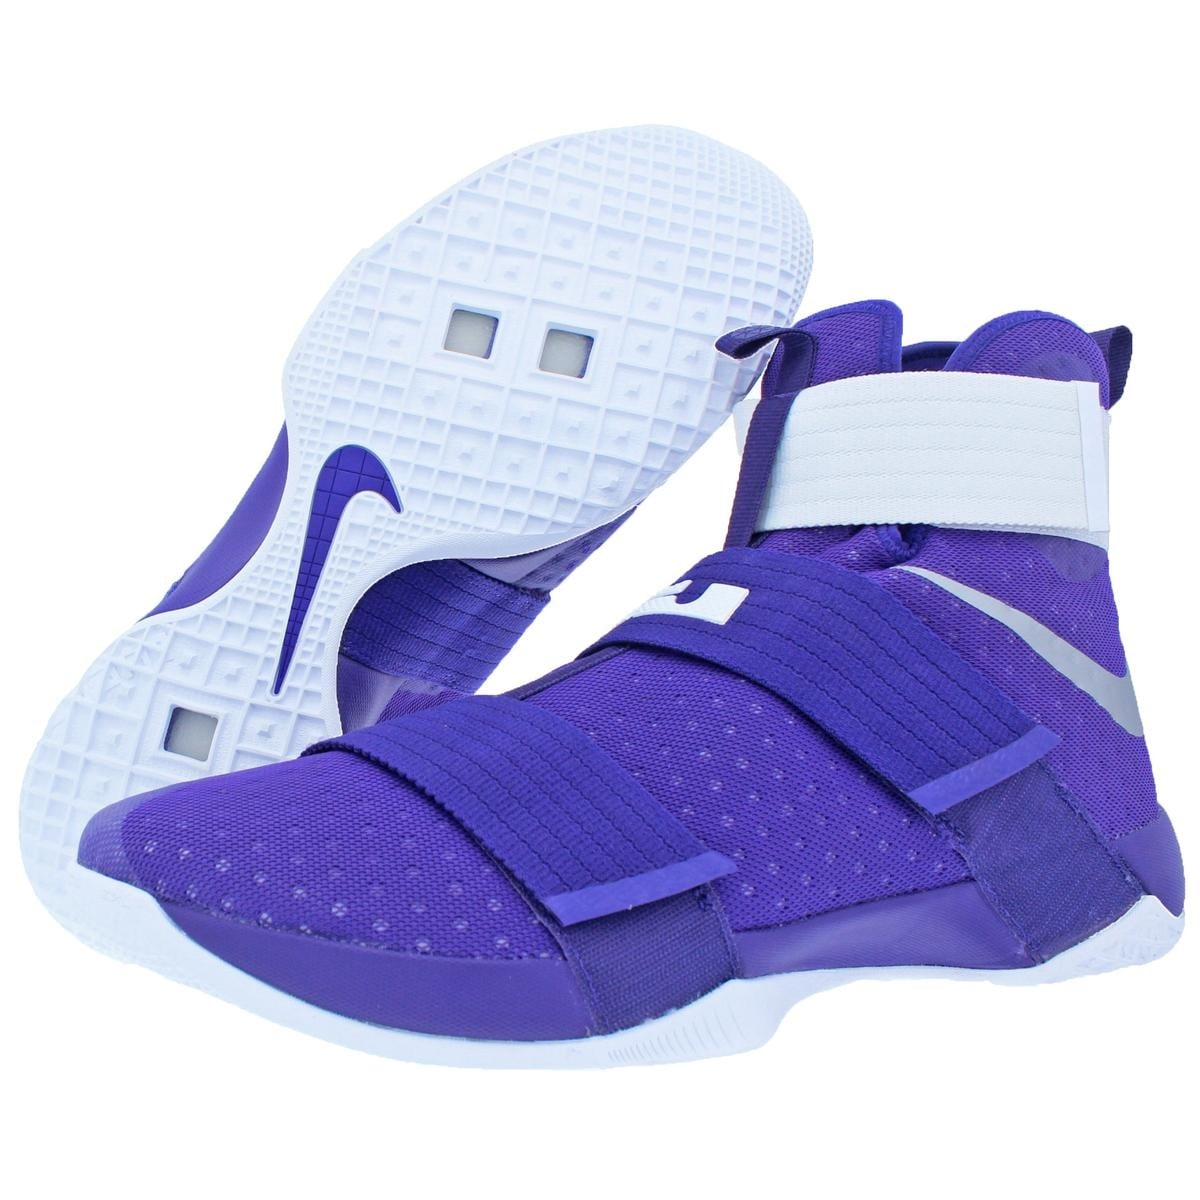 size 40 f5a47 7c30f Shop Nike LeBron Soldier 10 Men s Mesh High-Top Basketball Shoes Purple  Size 18 - 18 medium (d) - Free Shipping Today - Overstock - 22490961